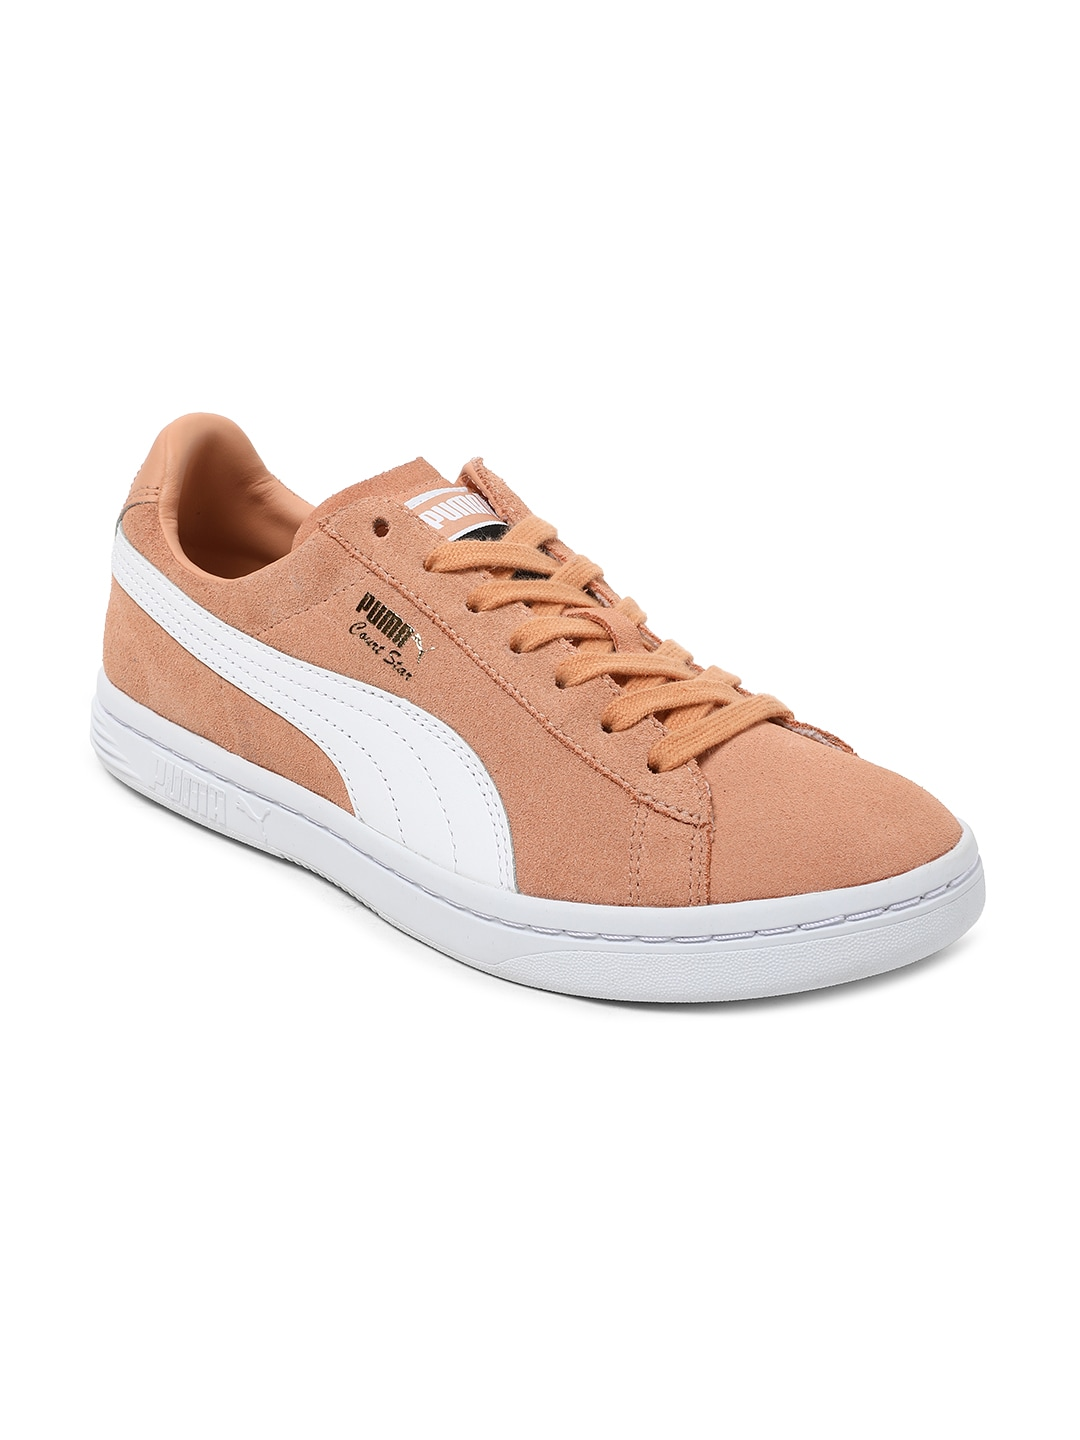 d20d1656453 On Court Casual Shoes - Buy On Court Casual Shoes online in India